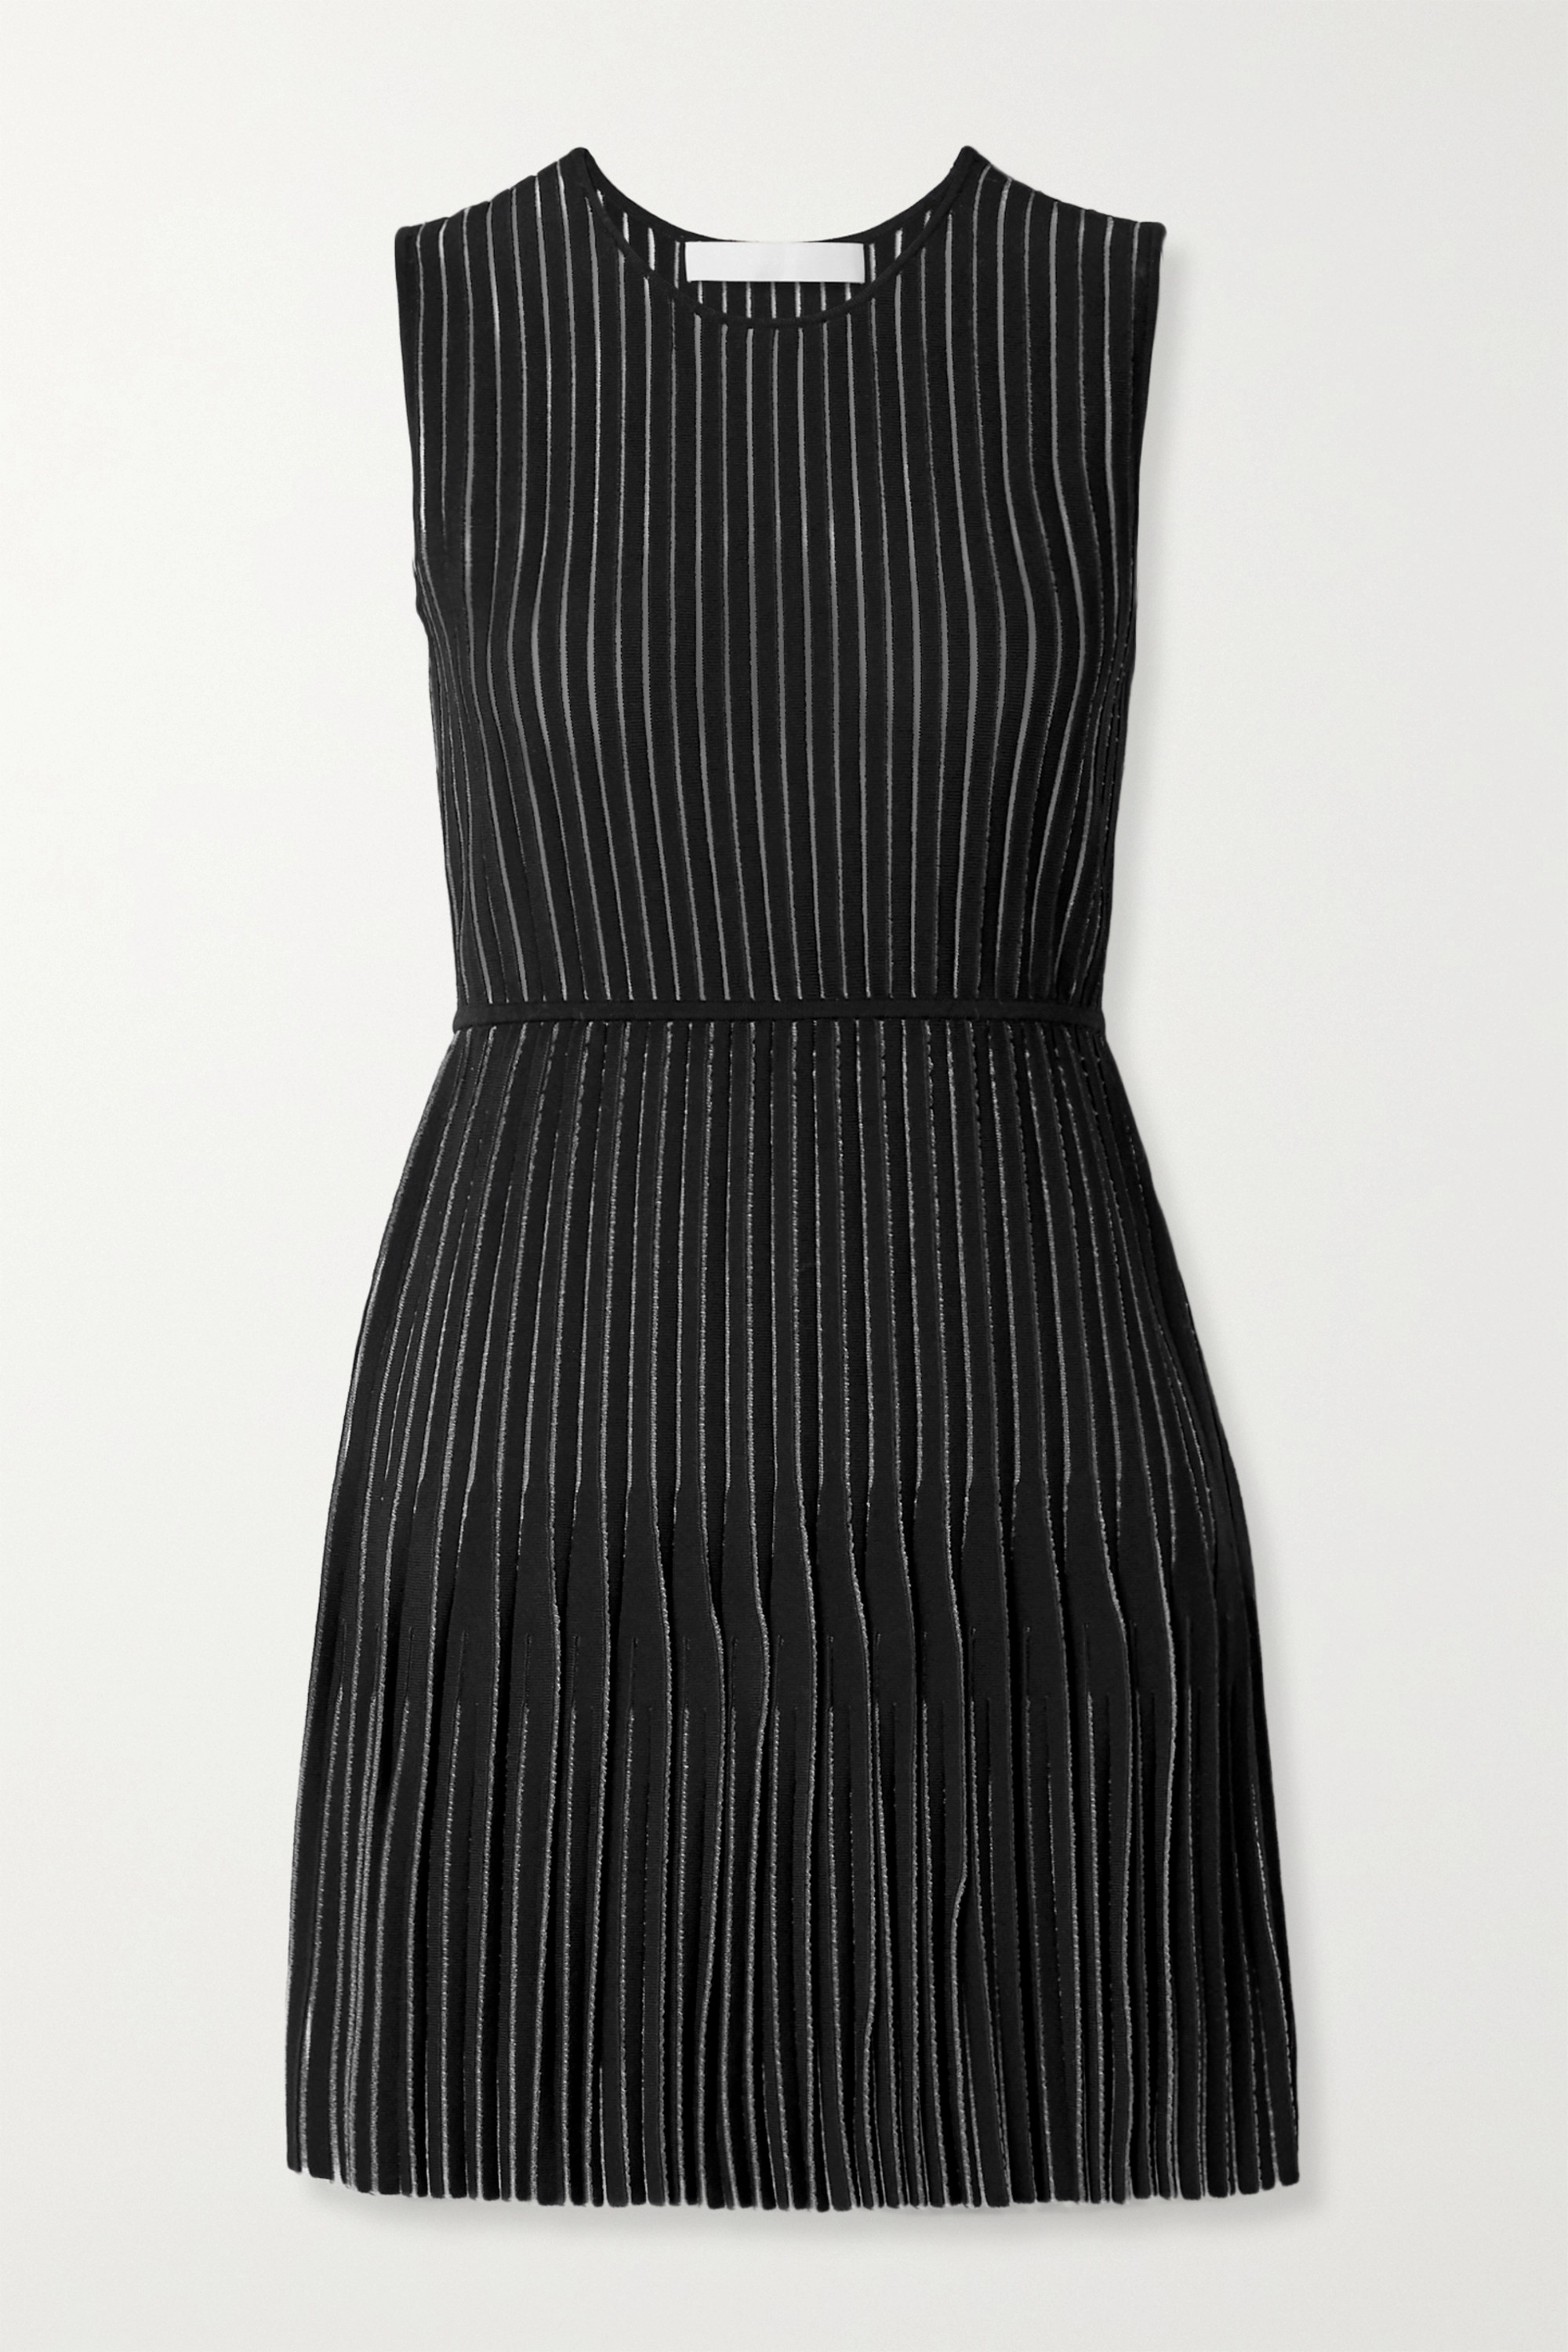 Dion Lee Knitted mini dress